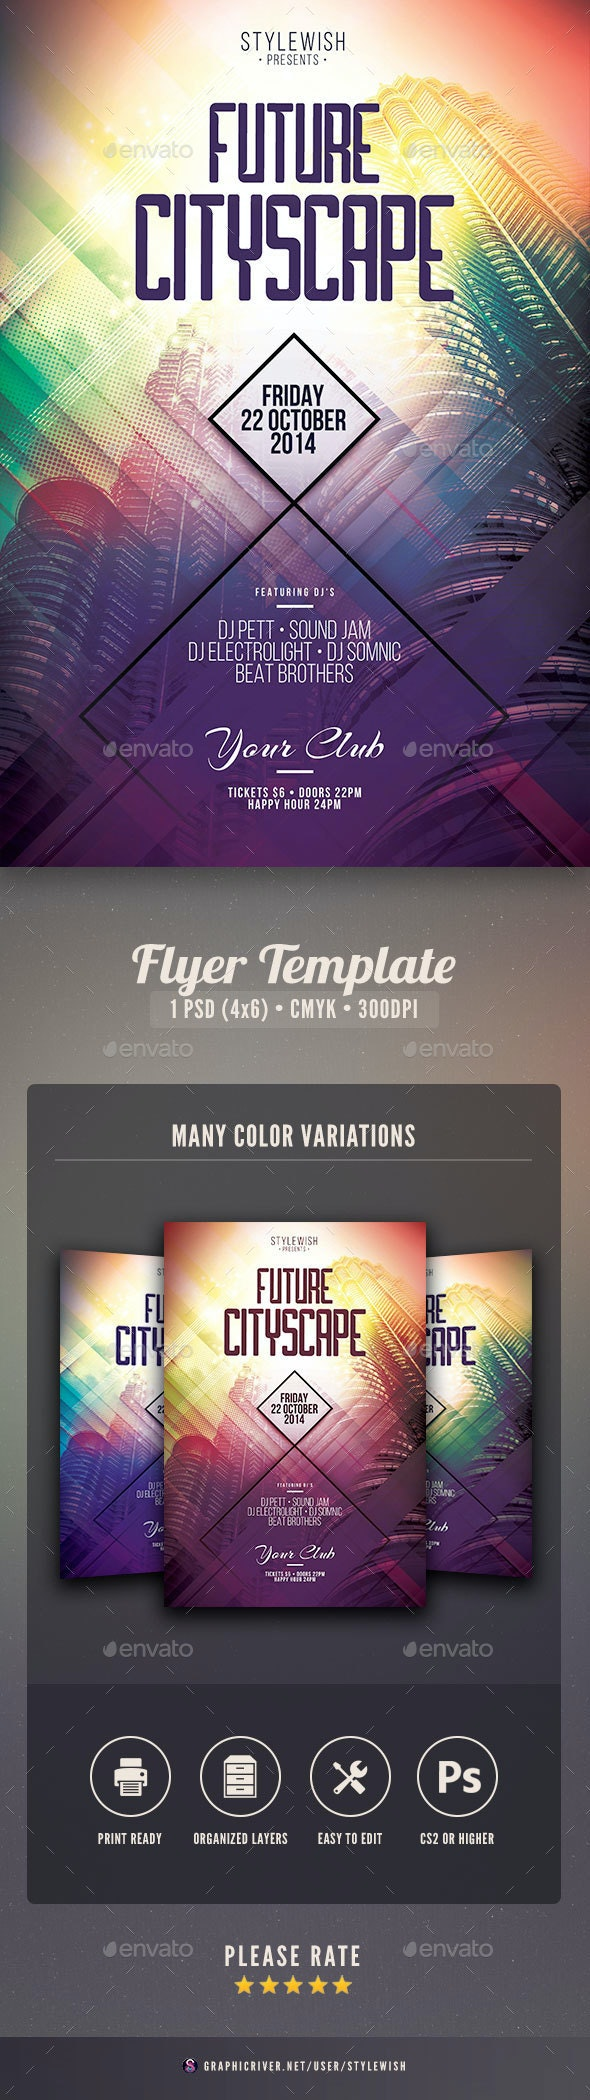 Future Cityscape Flyer - Clubs & Parties Events